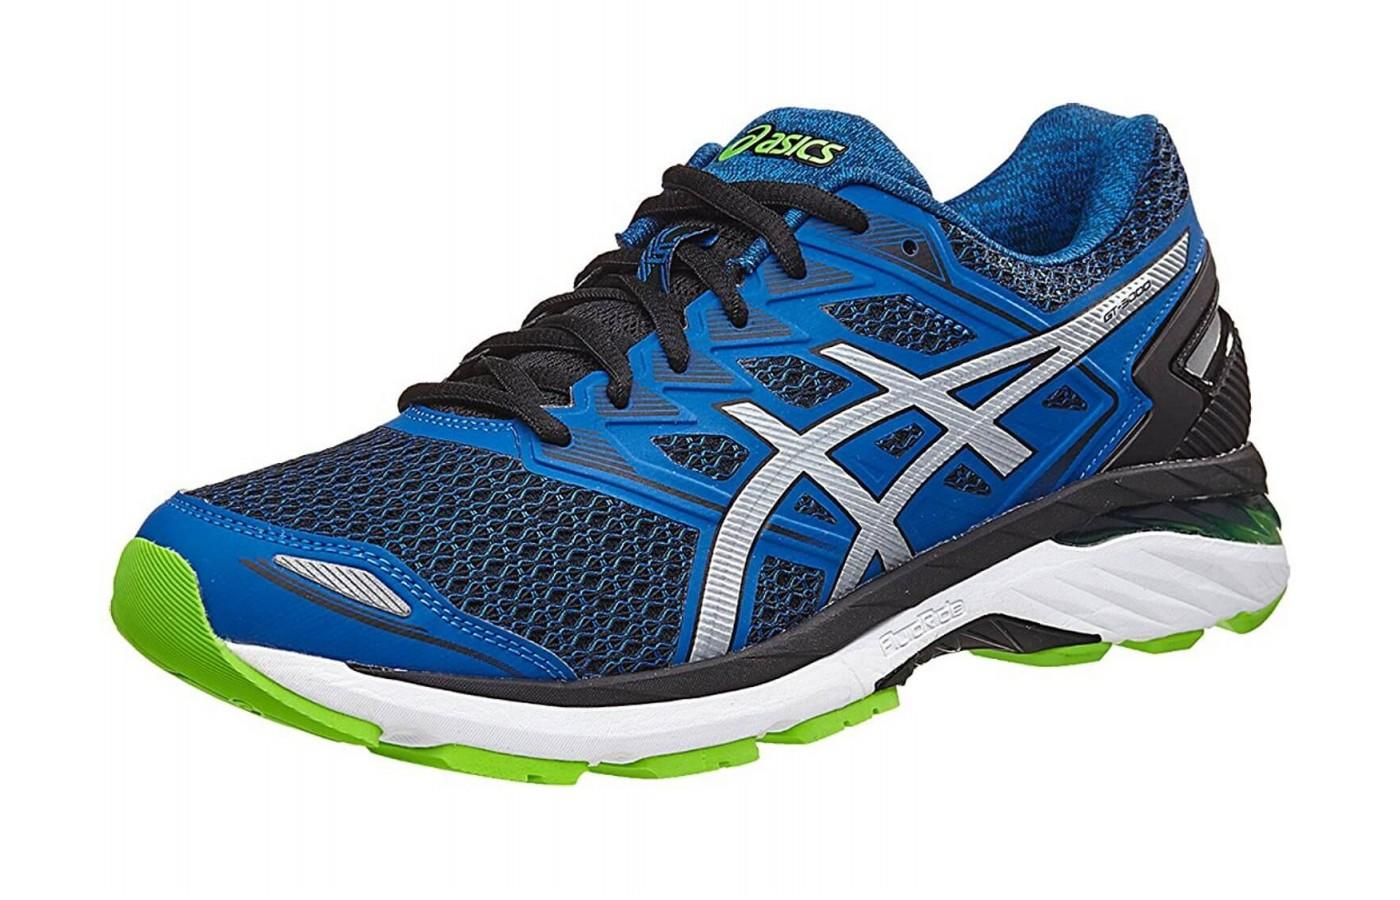 The Asics GT 3000 5 shown from the front/side